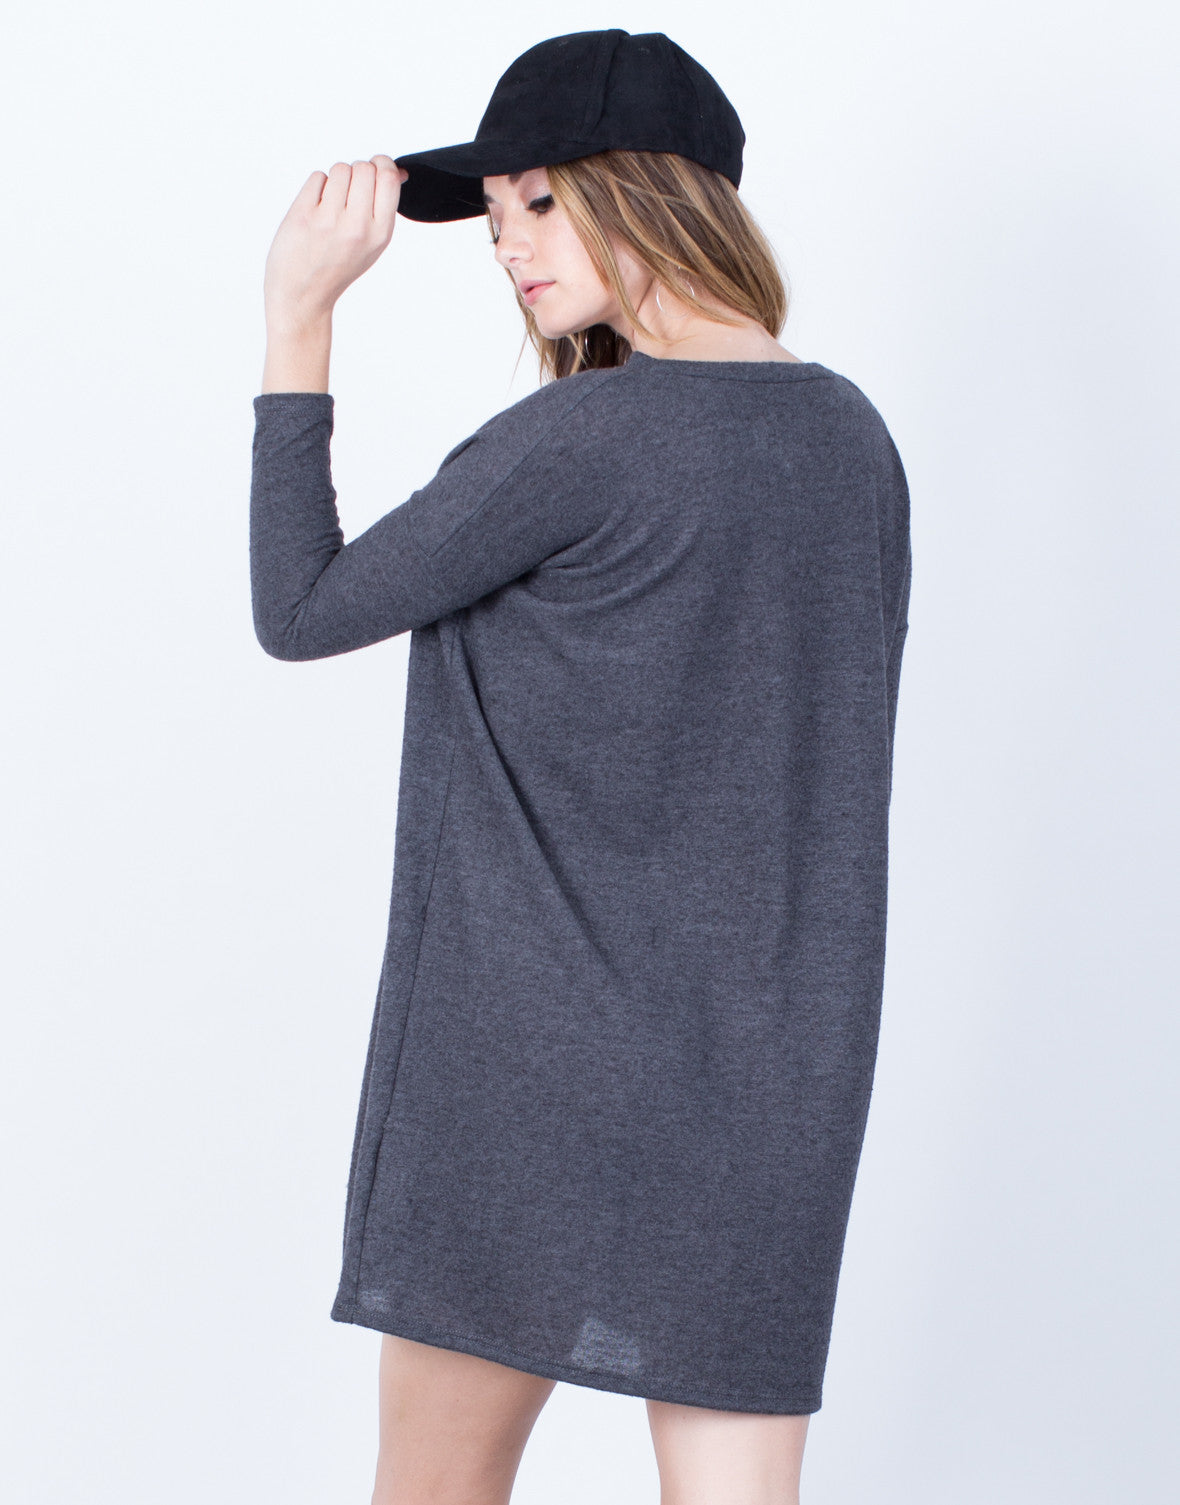 Back View of Relaxed Knit Dress